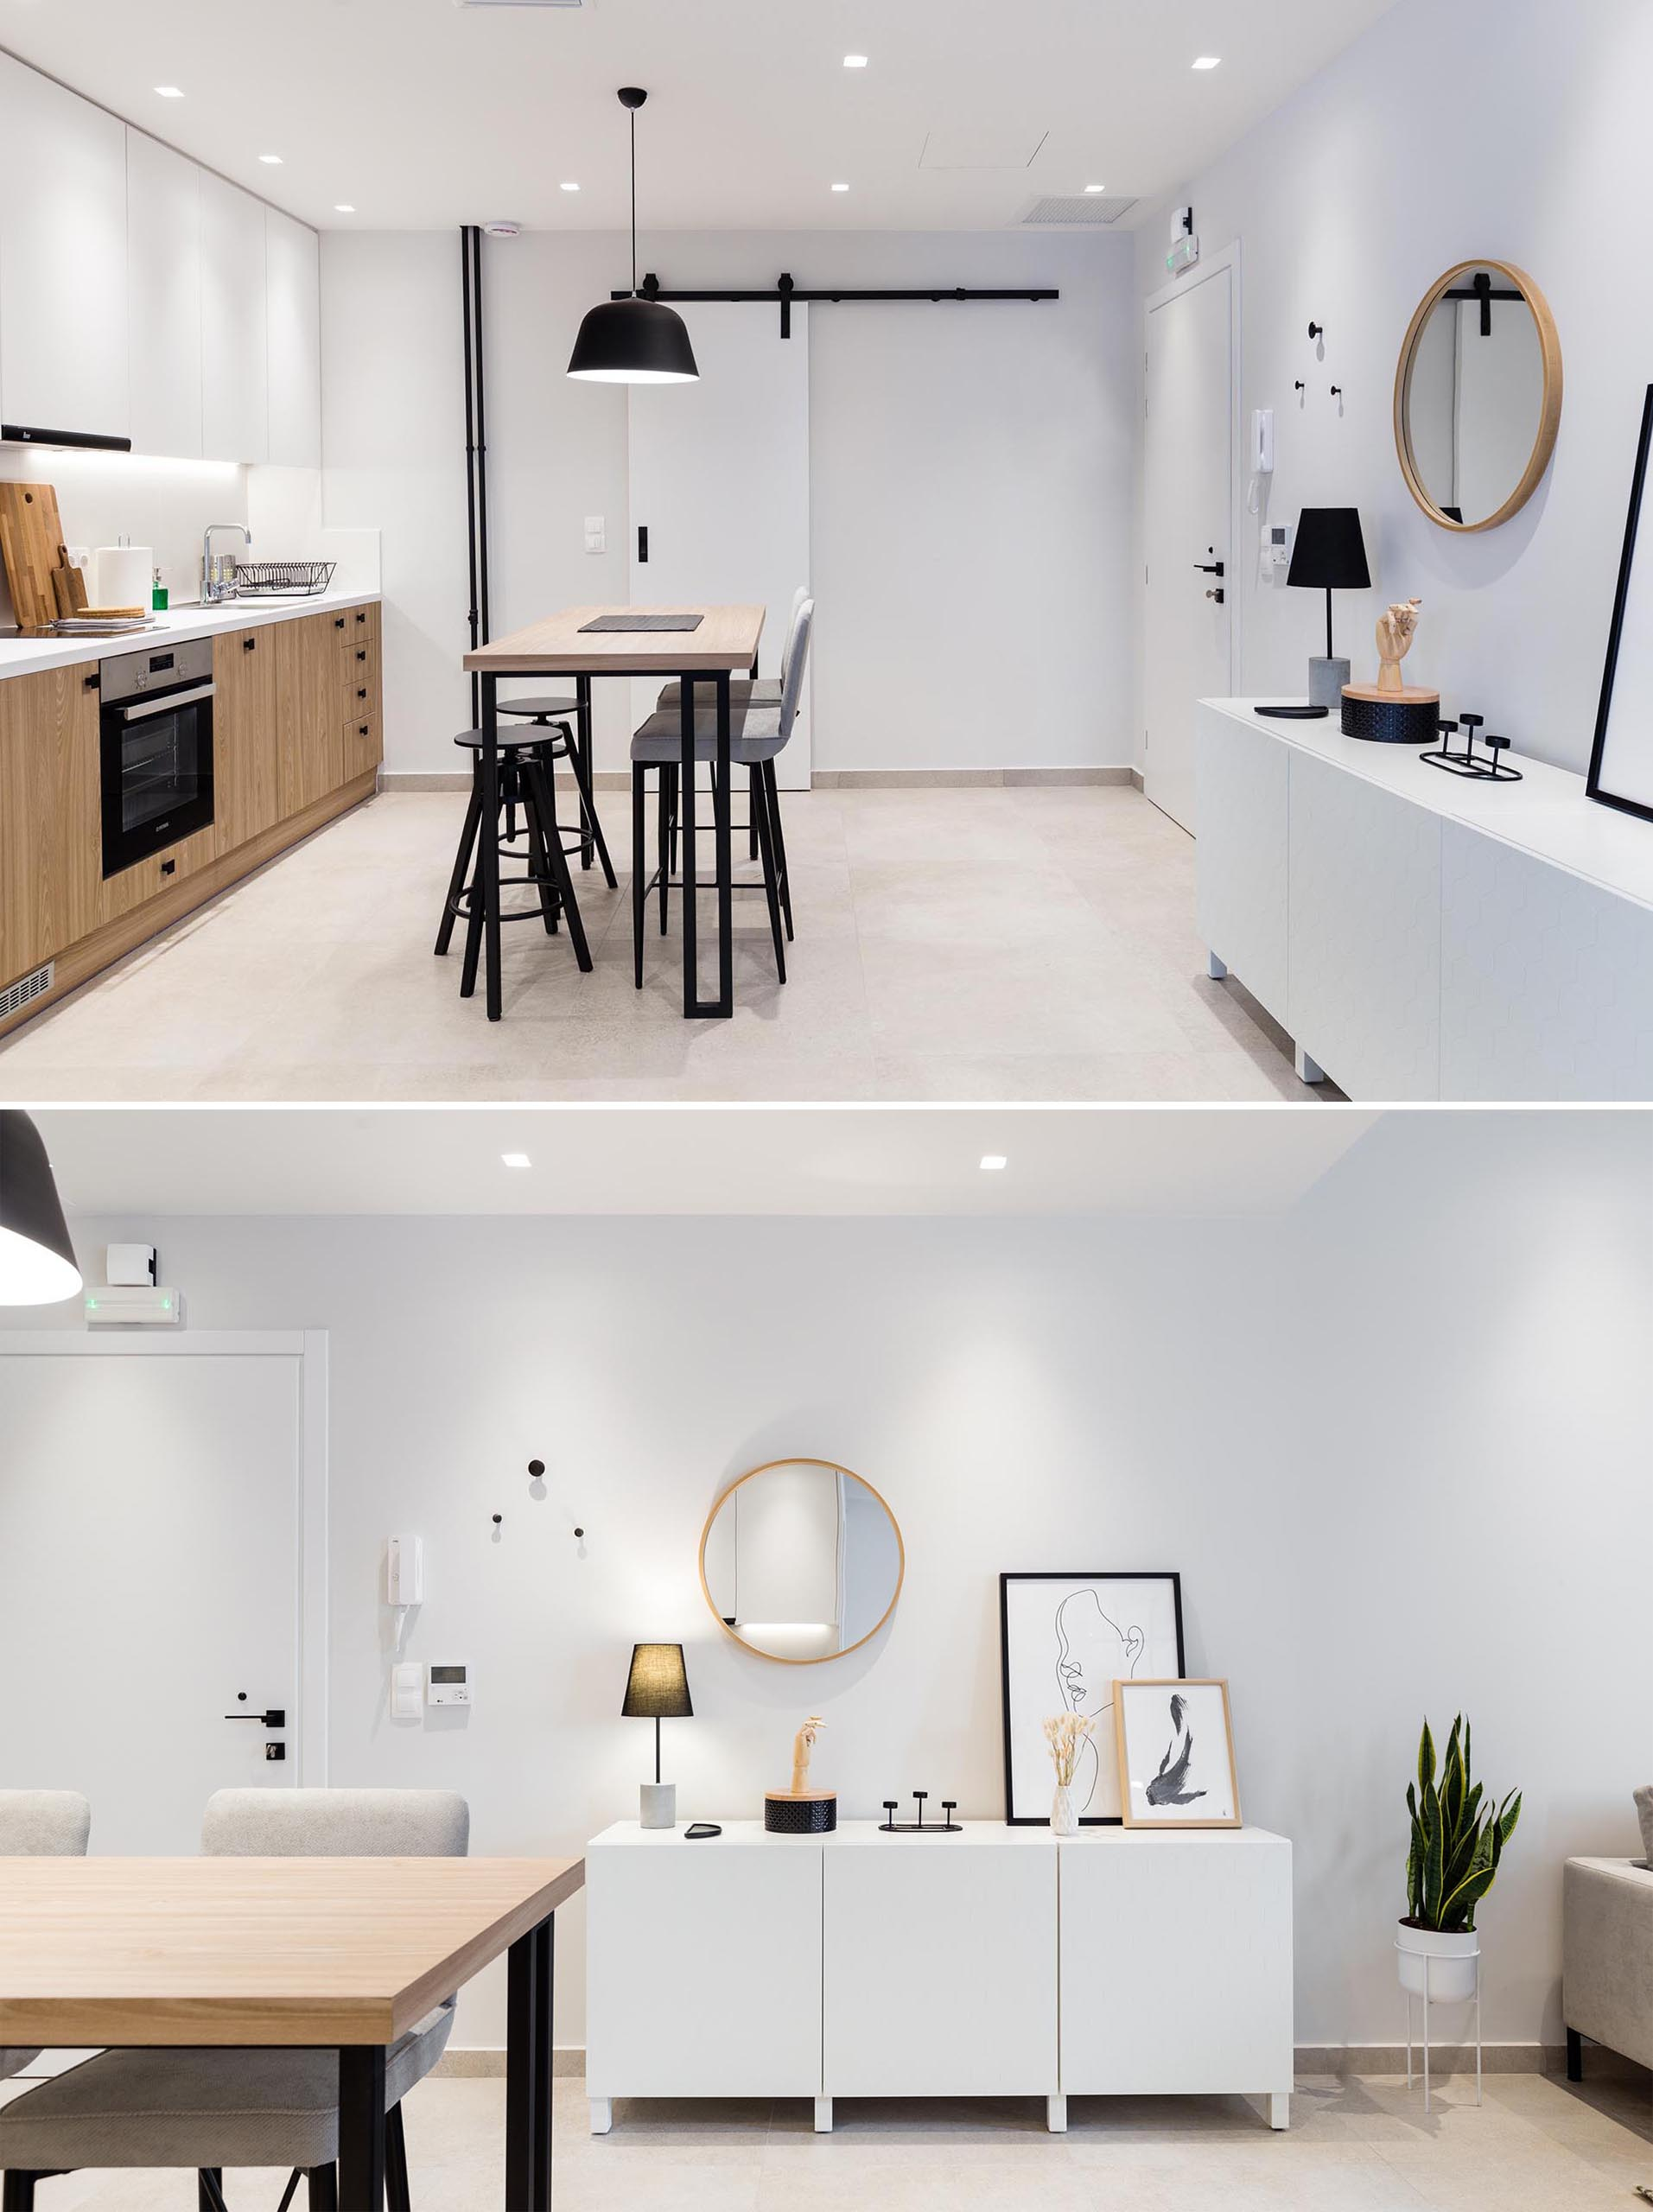 This small and modern apartment has the front door opening directly into the dining area and kitchen. A white sideboard creates added storage for the small apartment.